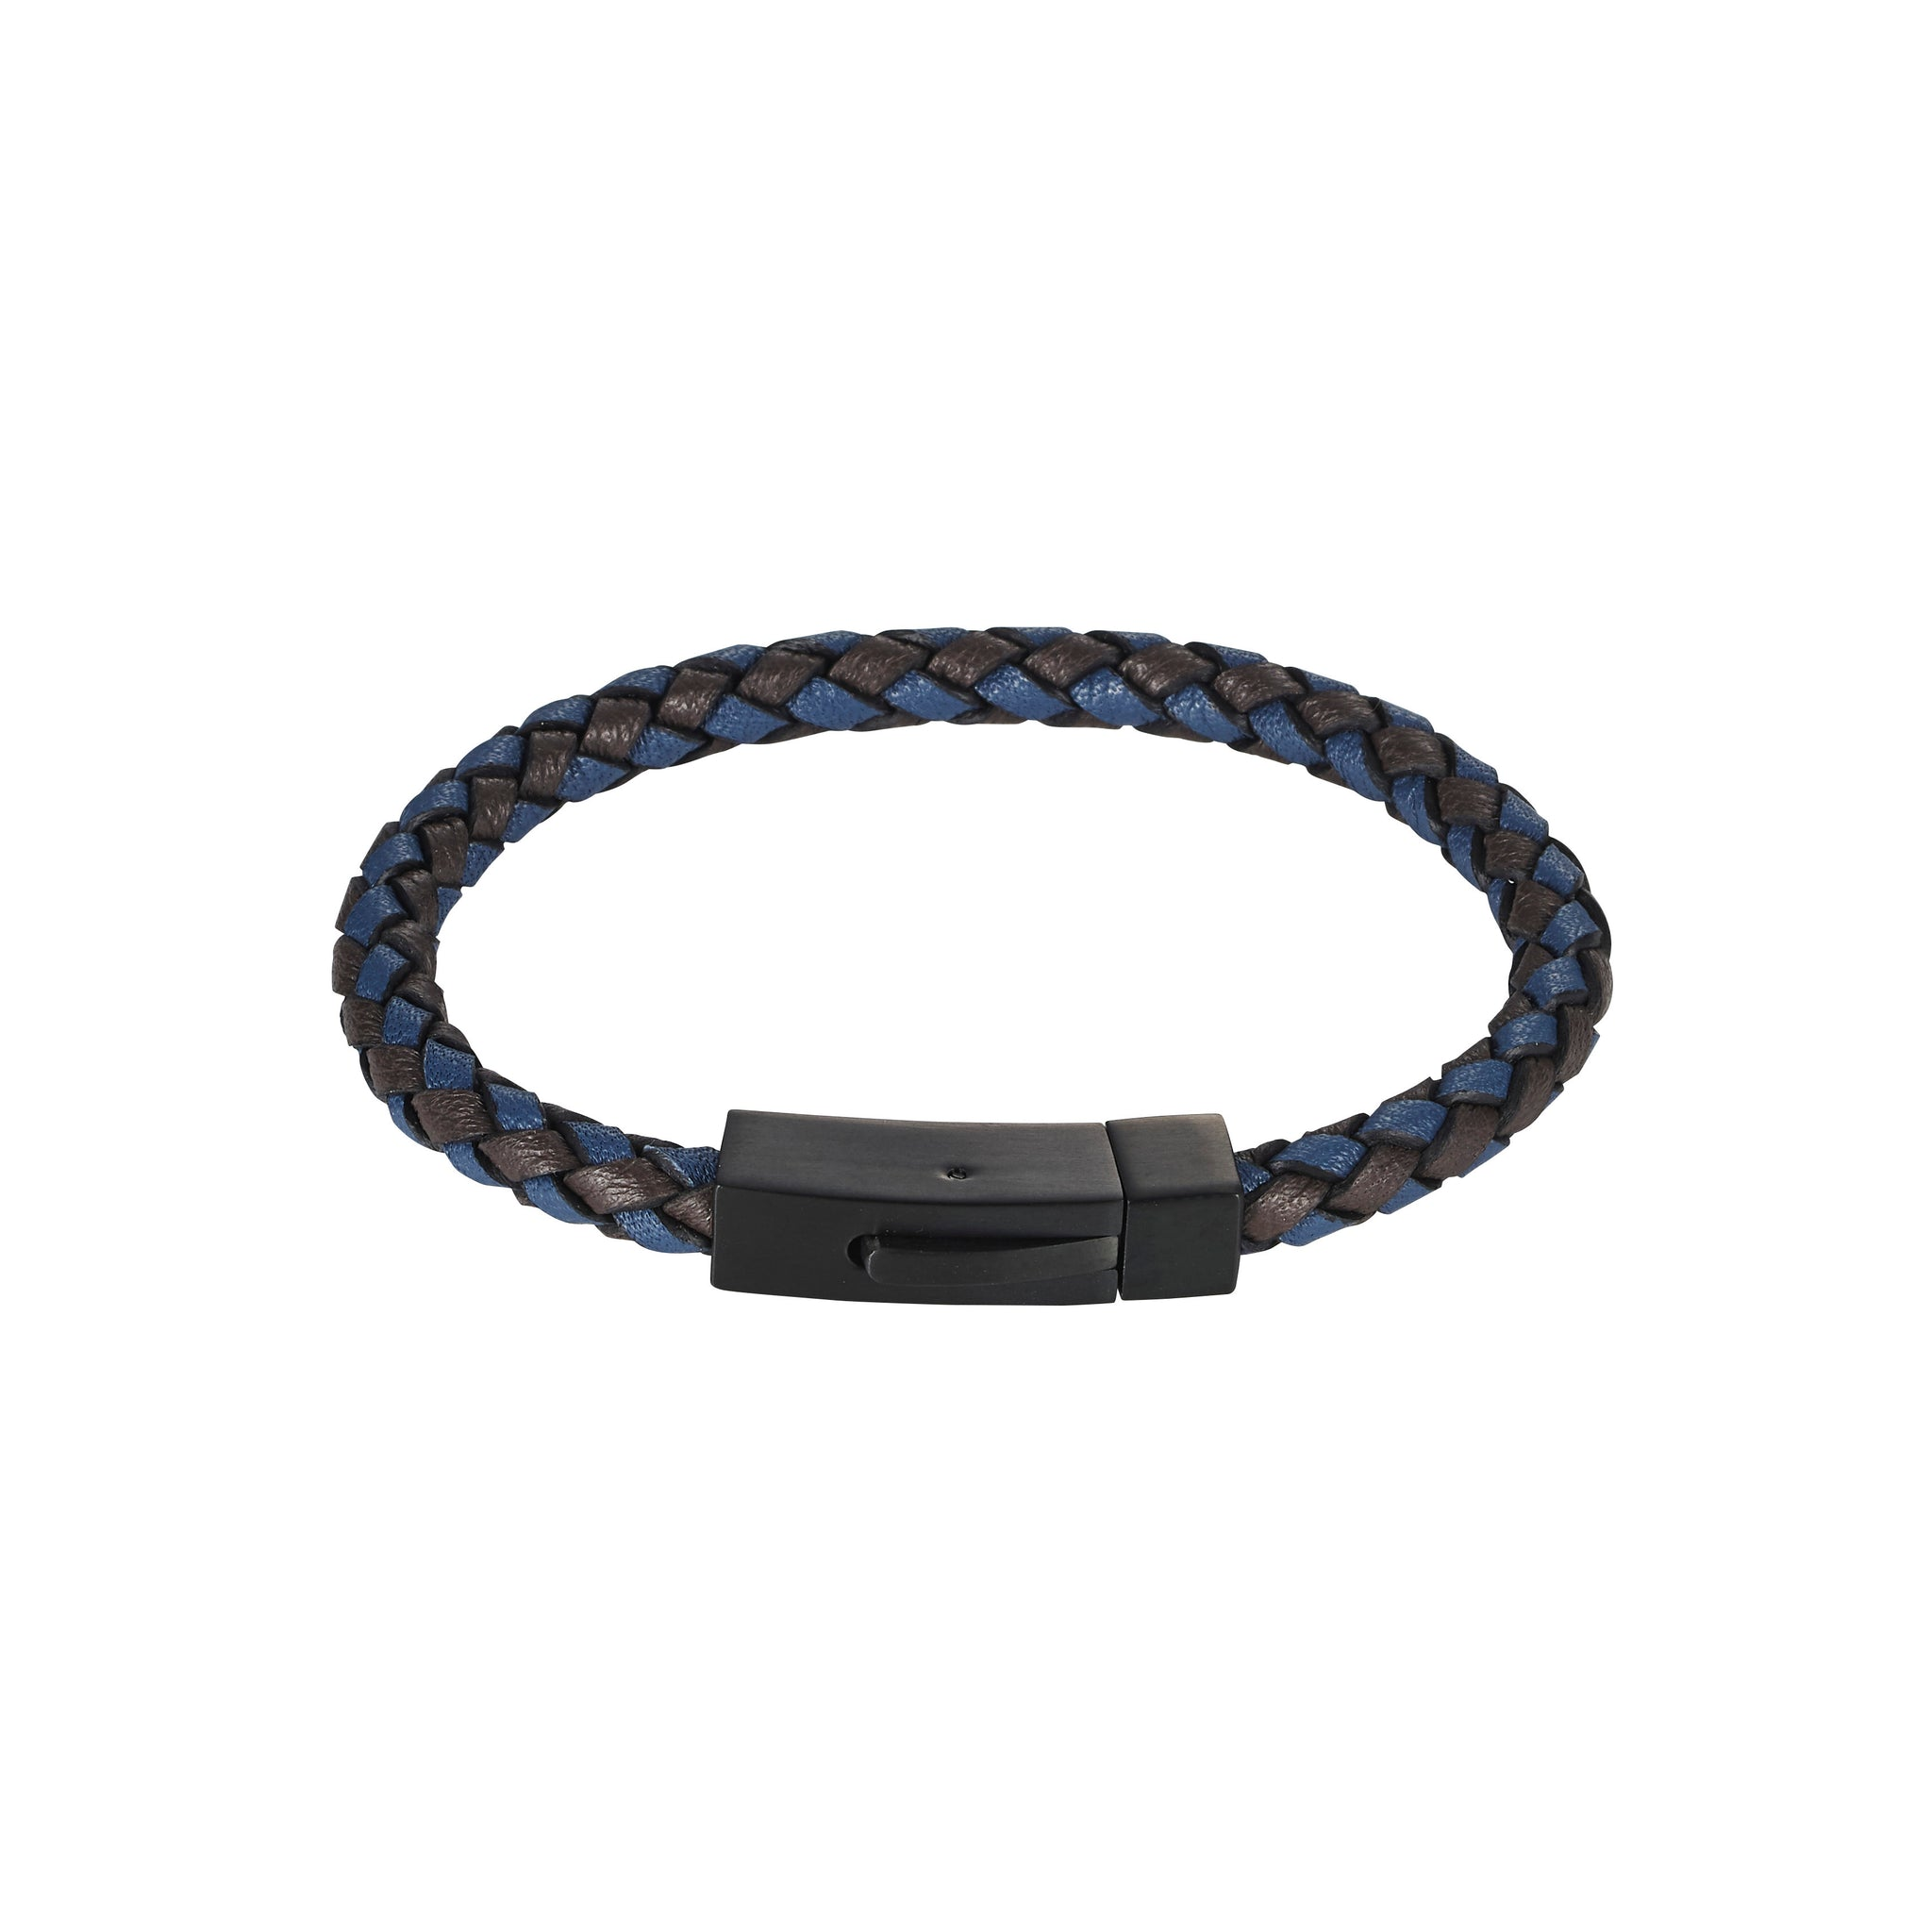 Cudworth Black and Blue Leather Bracelet